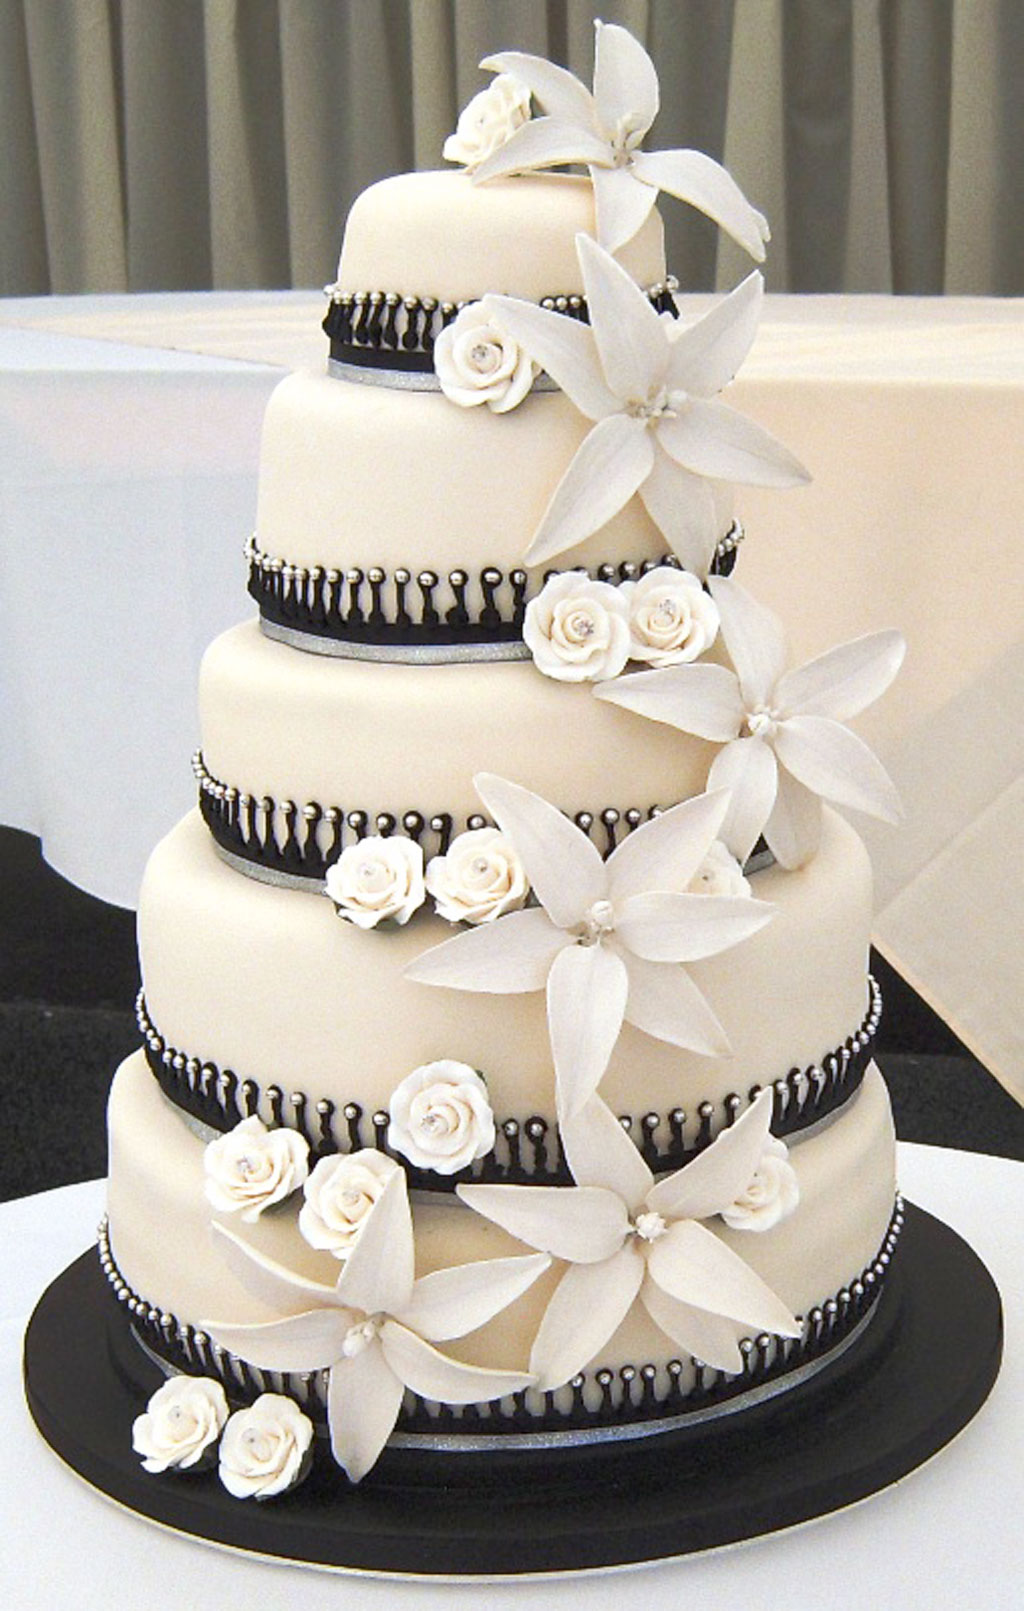 wedding cake pattern design black white wedding cake designs wedding cake cake ideas 23386